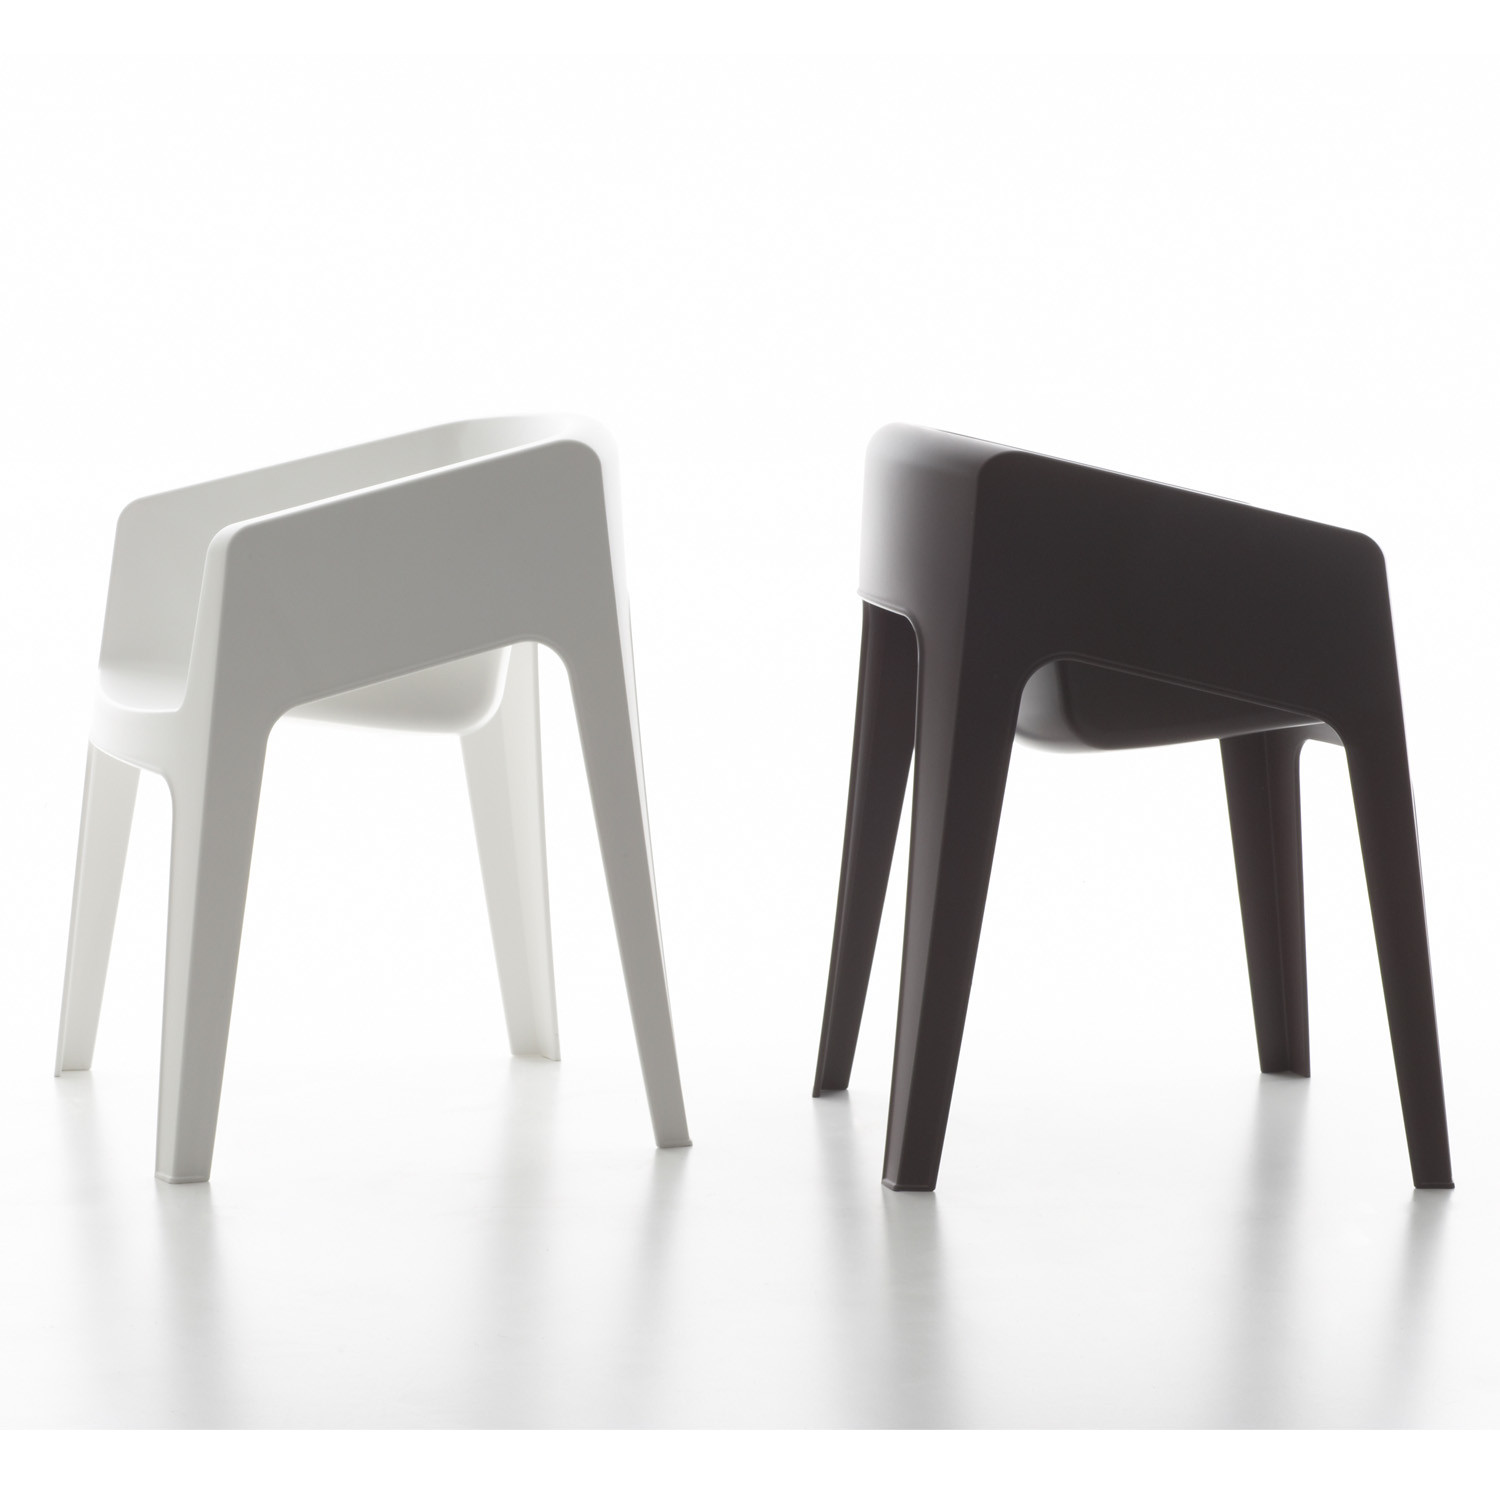 Tototo Outdoor Chairs